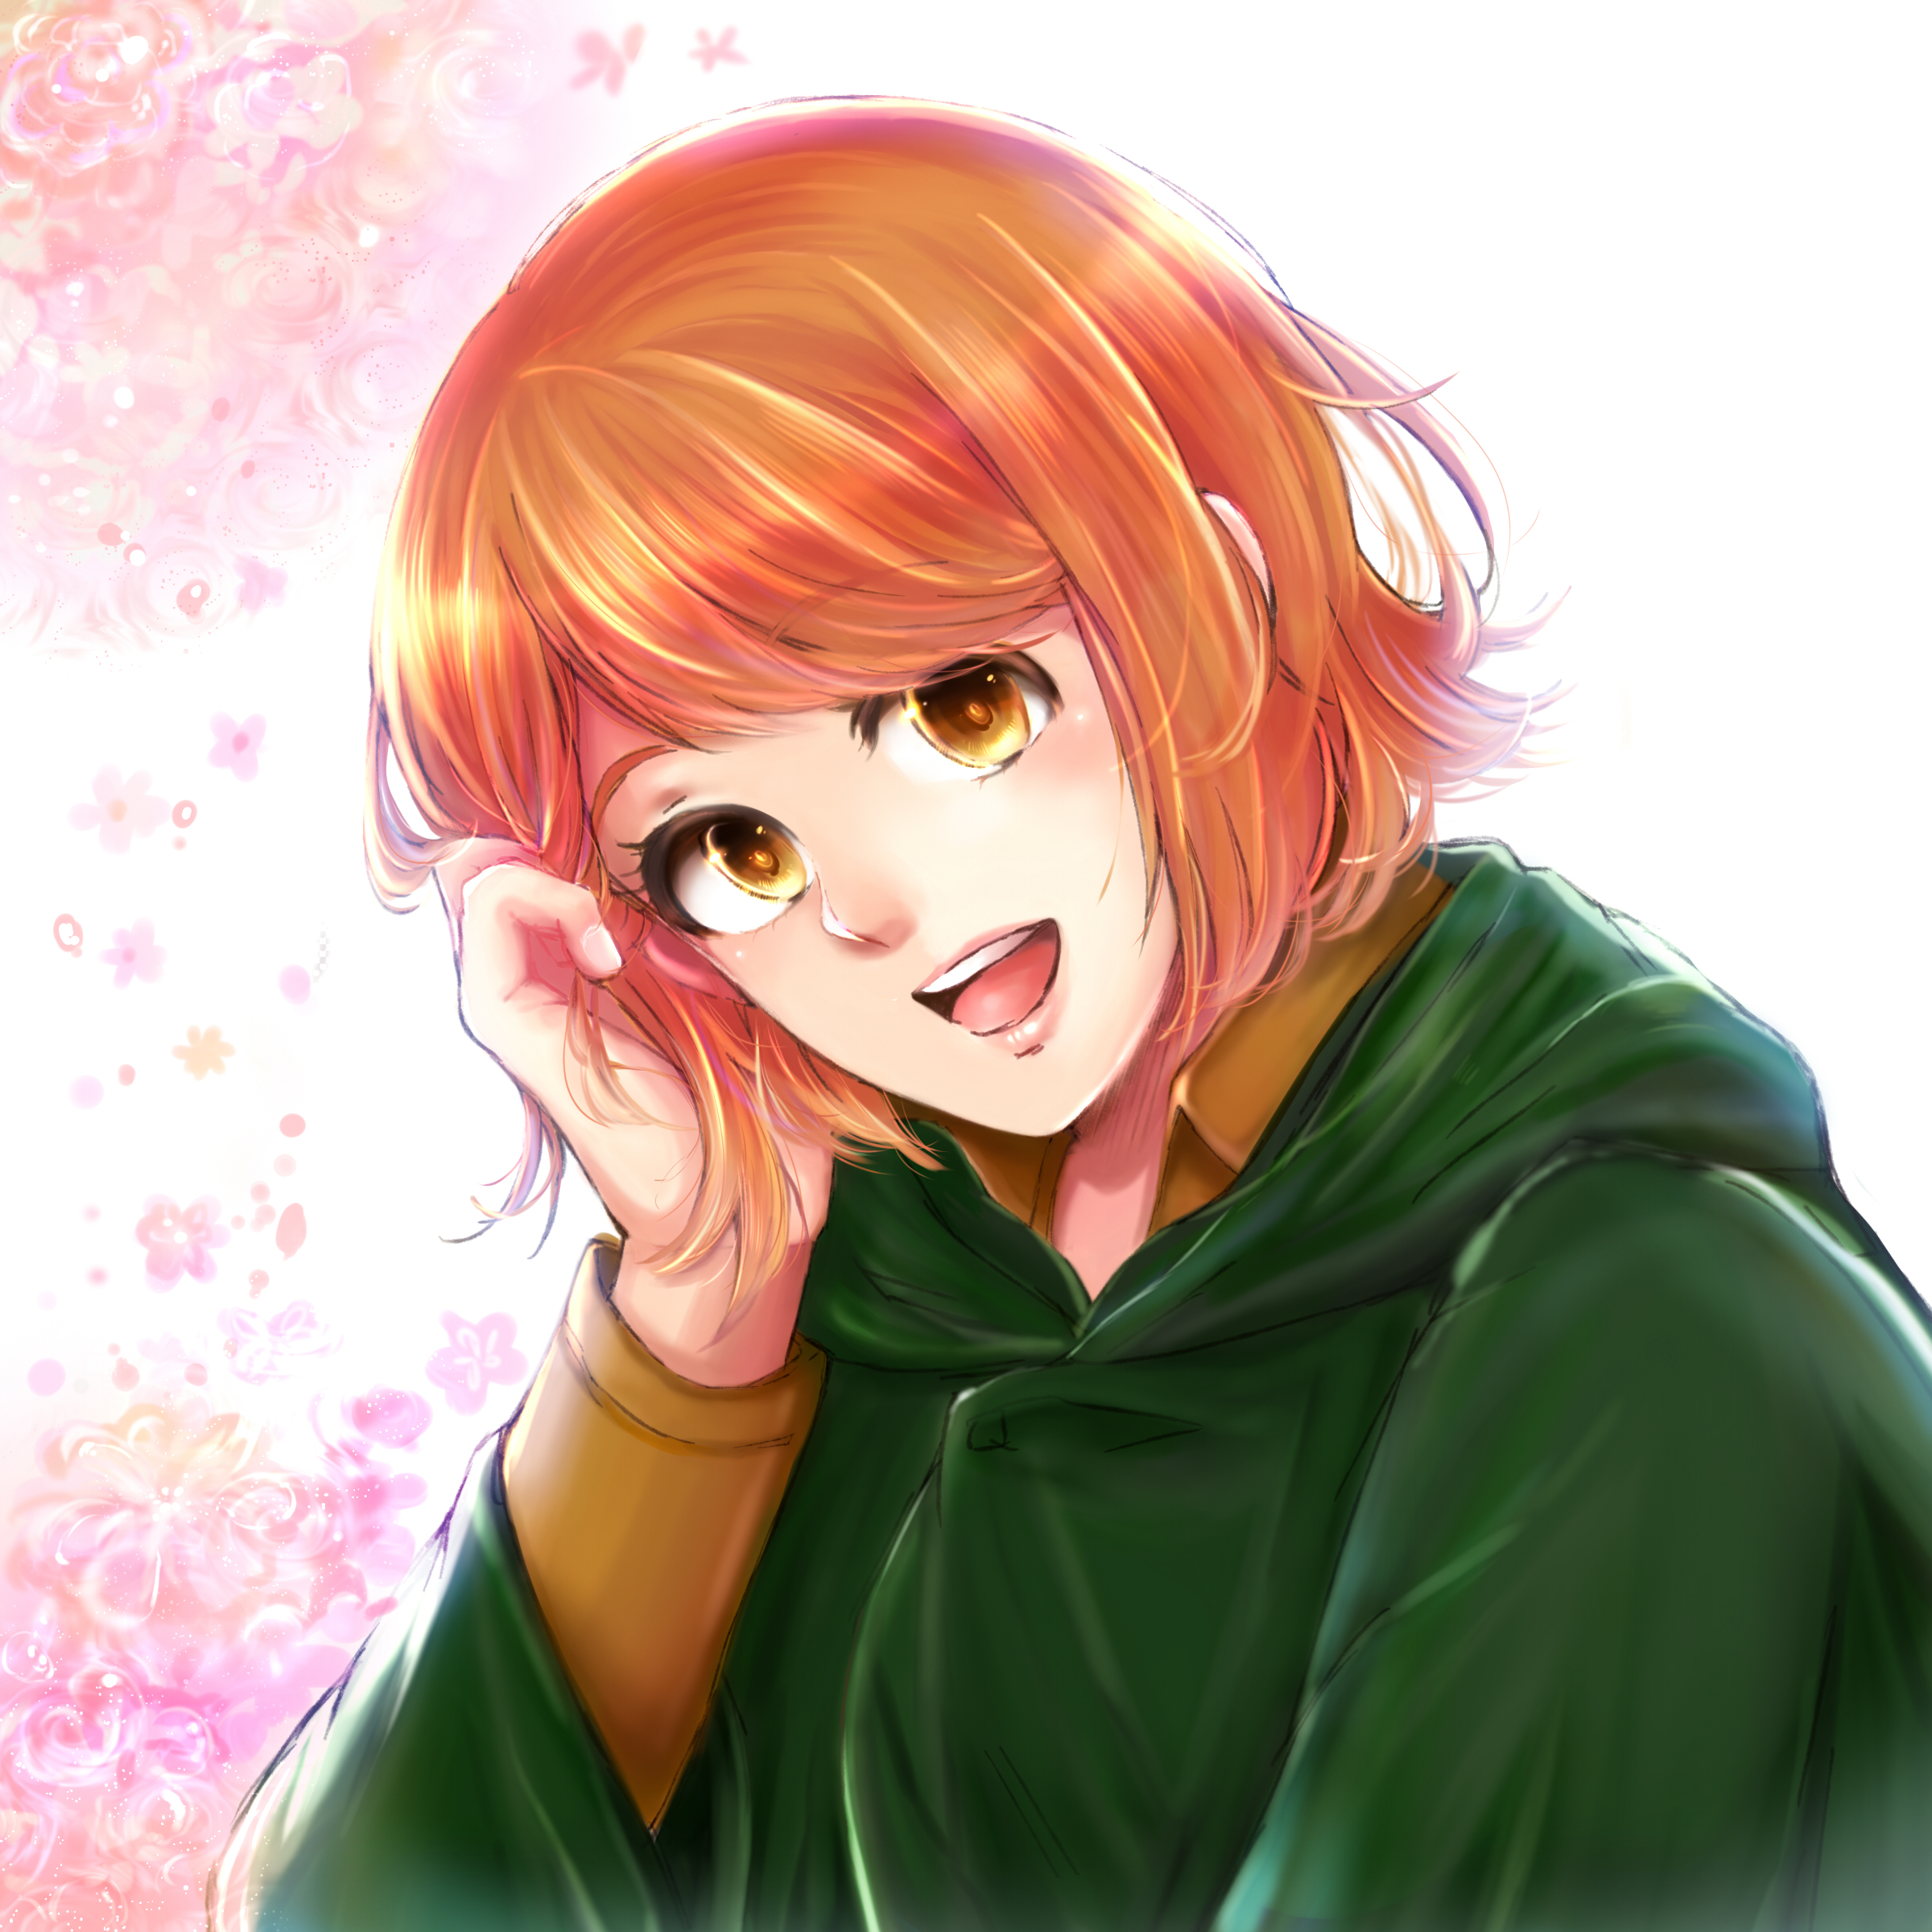 Petra ral clipart free library Petra Ral, Fanart | page 11 - Zerochan Anime Image Board free library